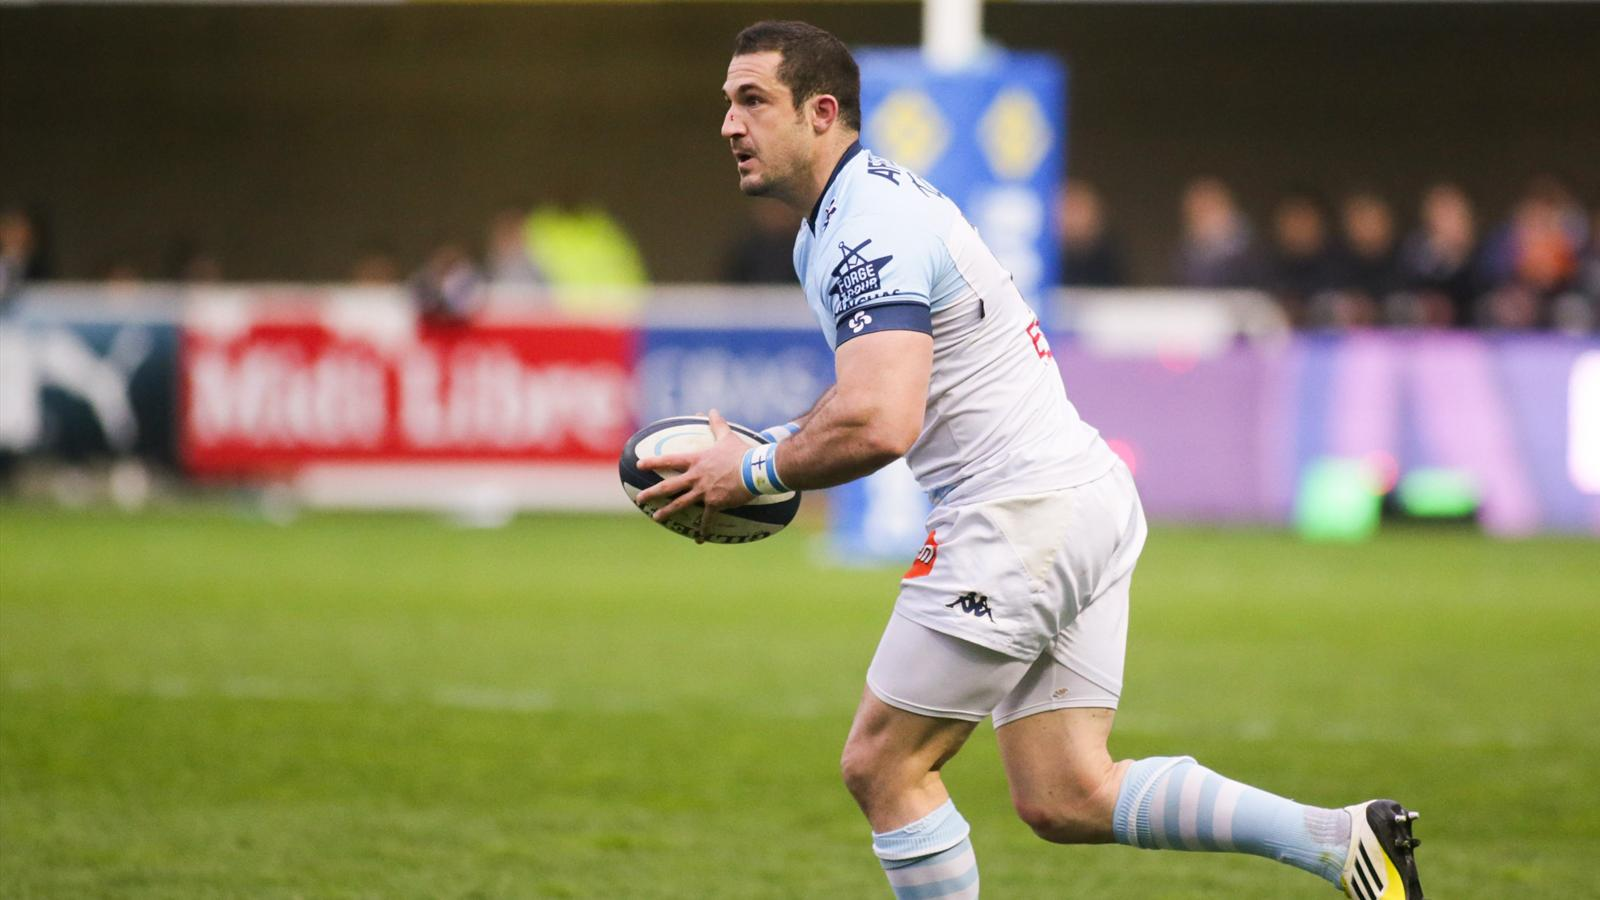 Scott Spedding - grenoble montpellier - 29 mars 2014